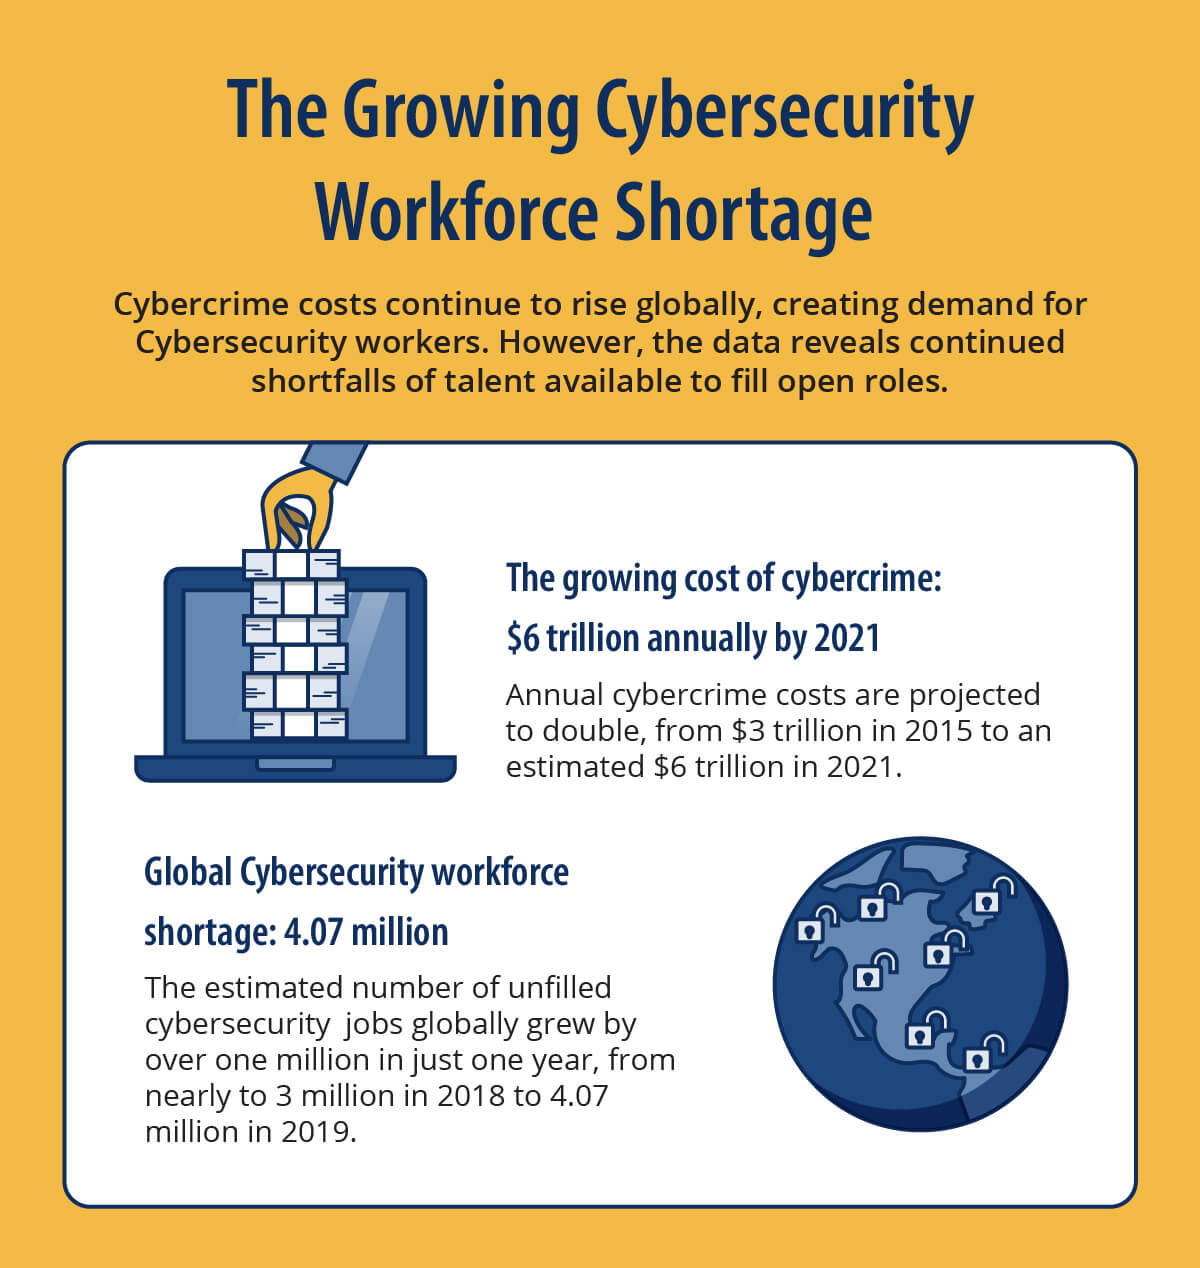 the growing cost of cybercrime, $6 trillion annually by 2021